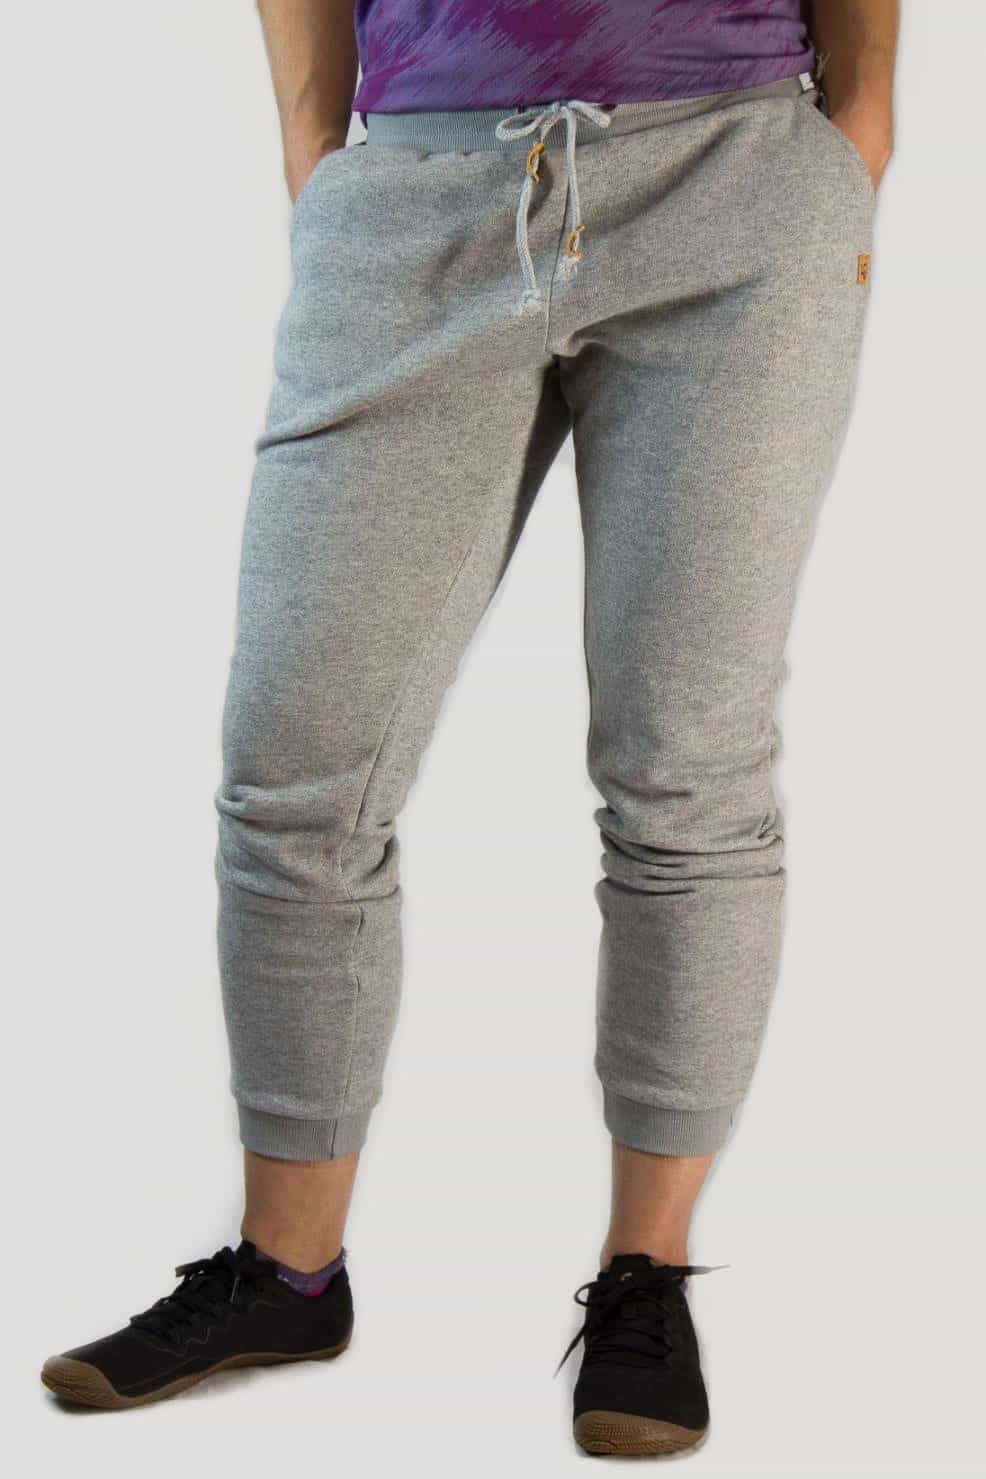 tentree-Bamone Sweatpant 2018 - Women's